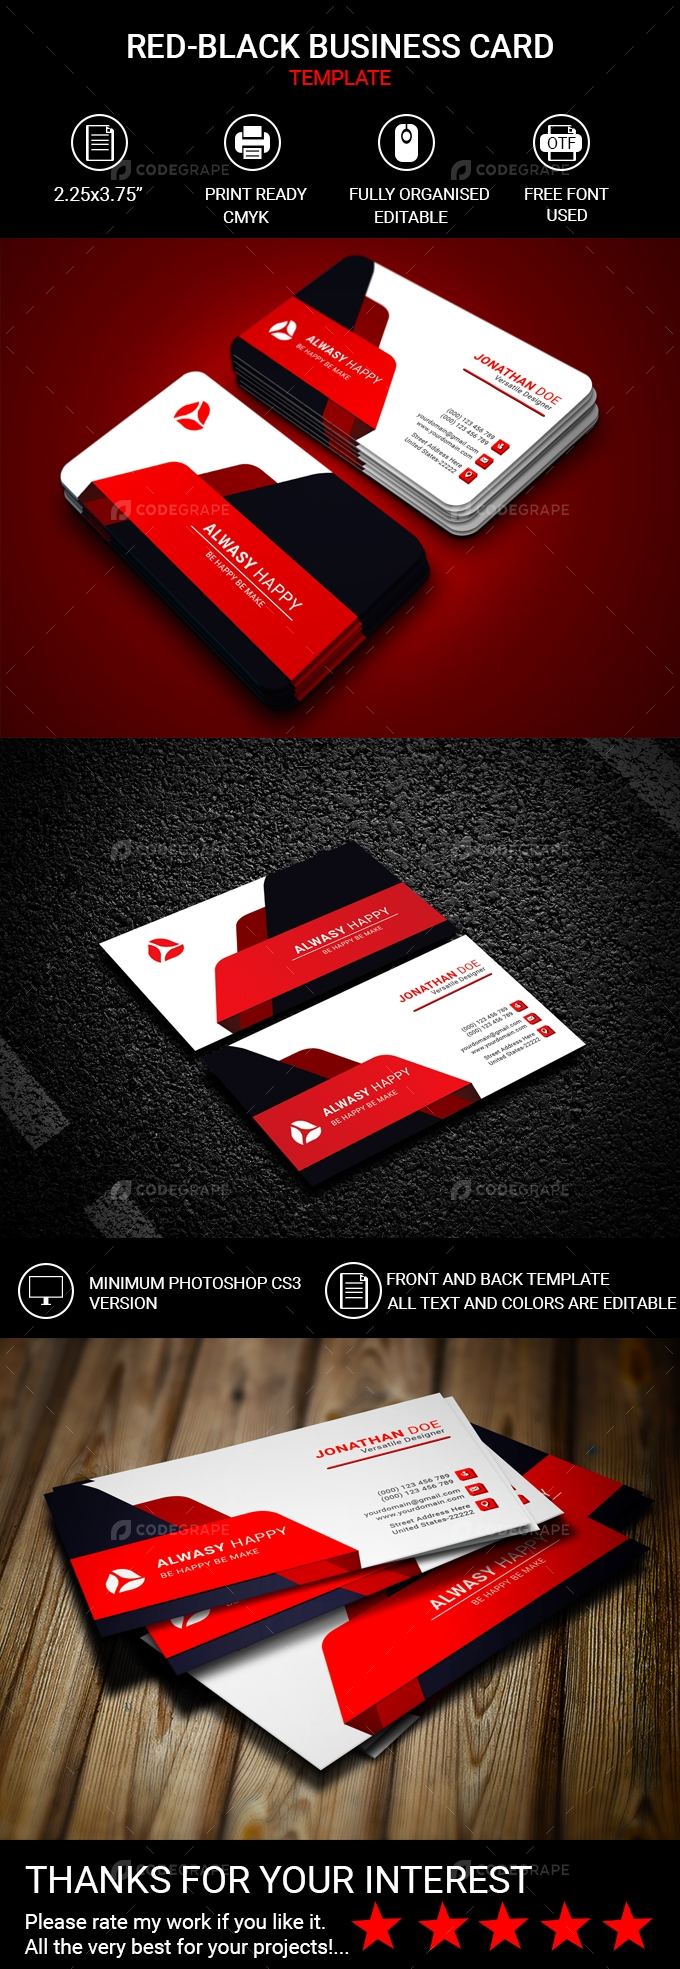 Red-Black Business Card